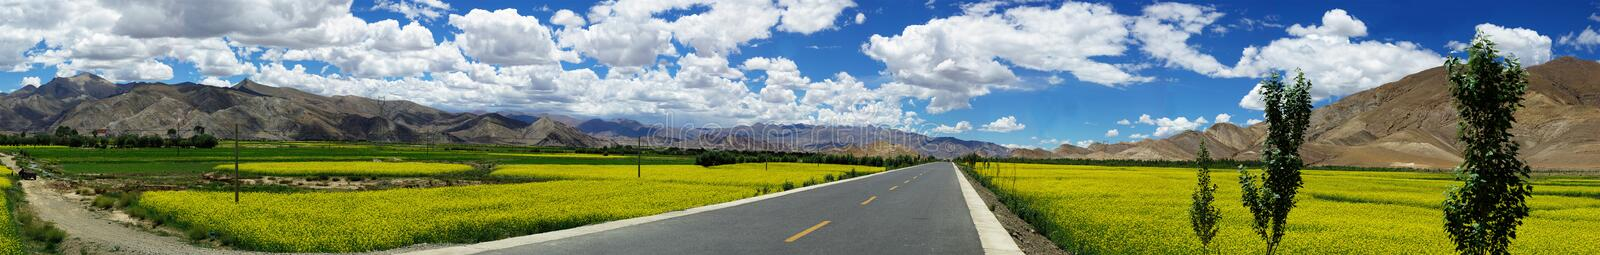 Country road with flowers,mountain and trees royalty free stock images